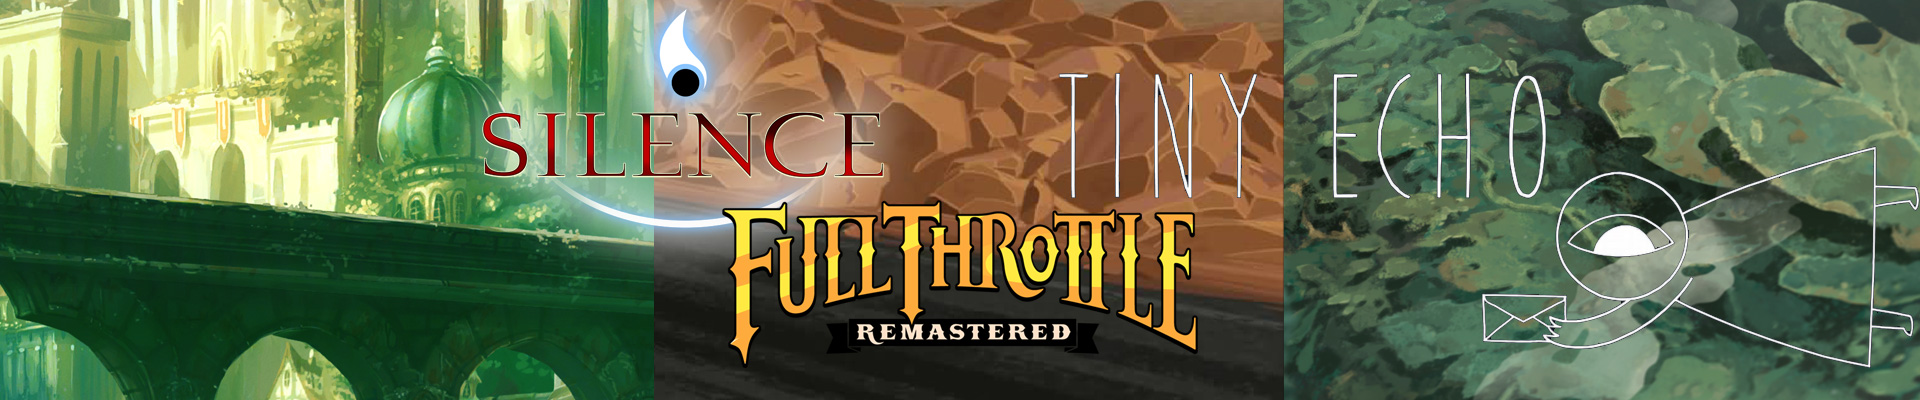 Thoughts on: Silence, Full Throttle Remastered and Tiny Echo